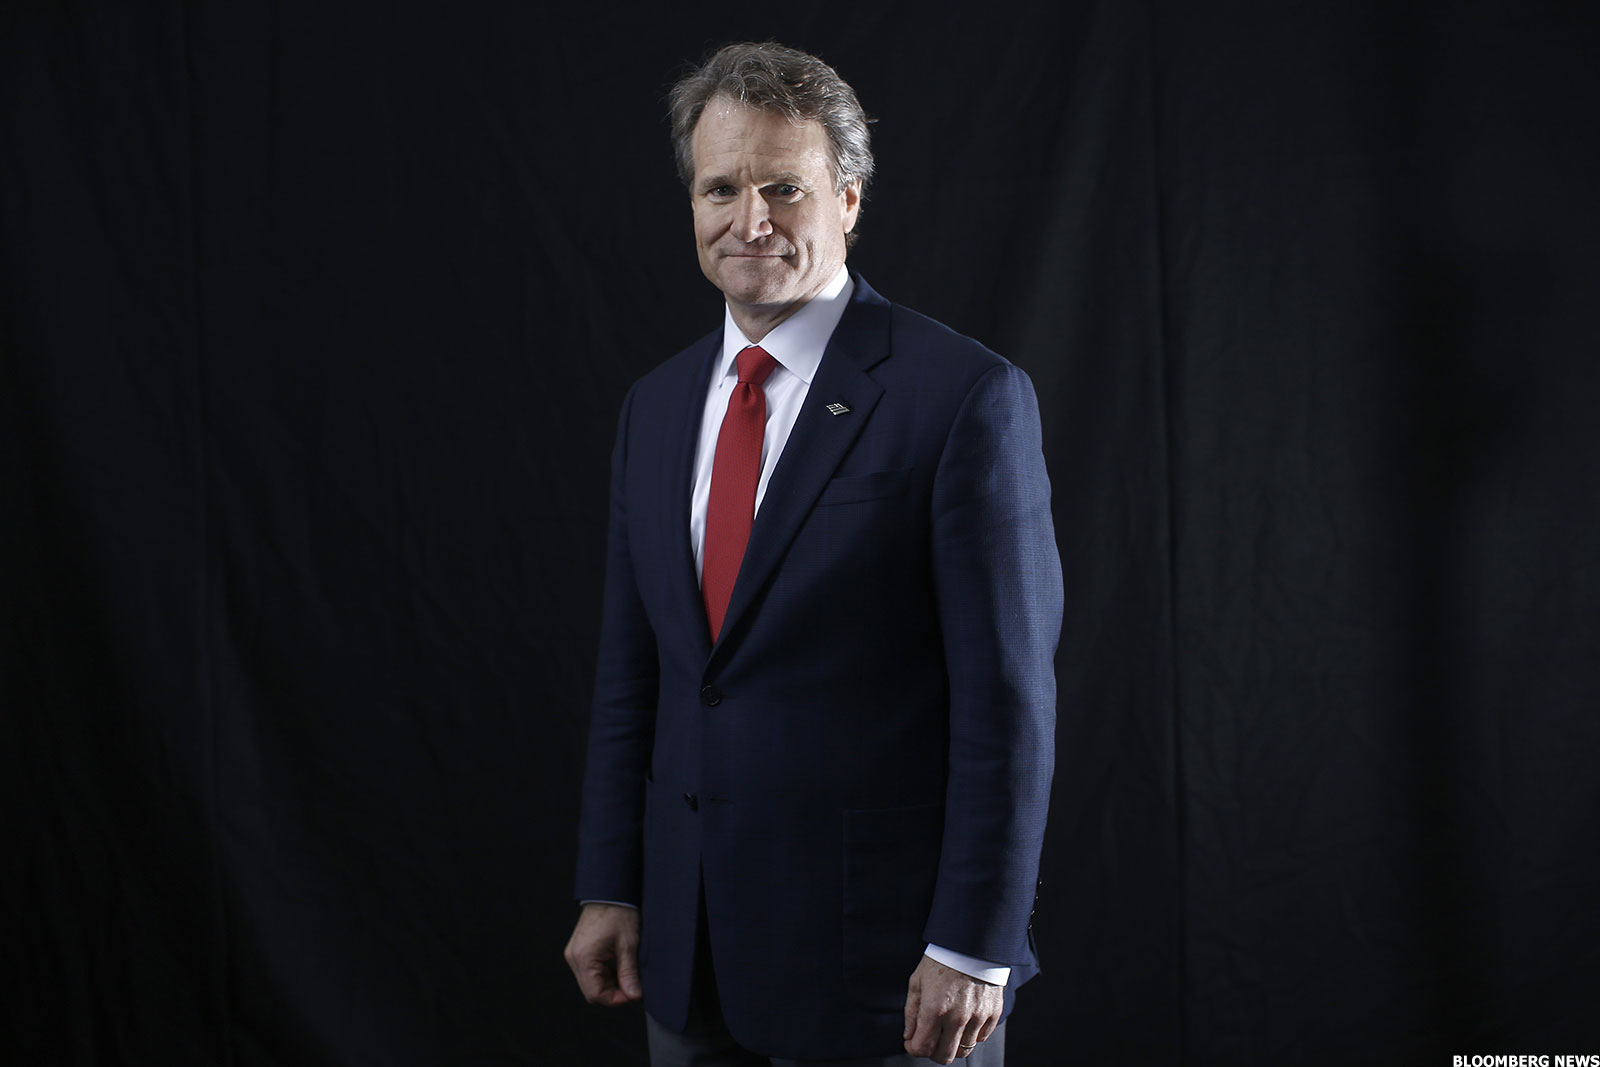 Bank of America CEO Brian Moynihan.